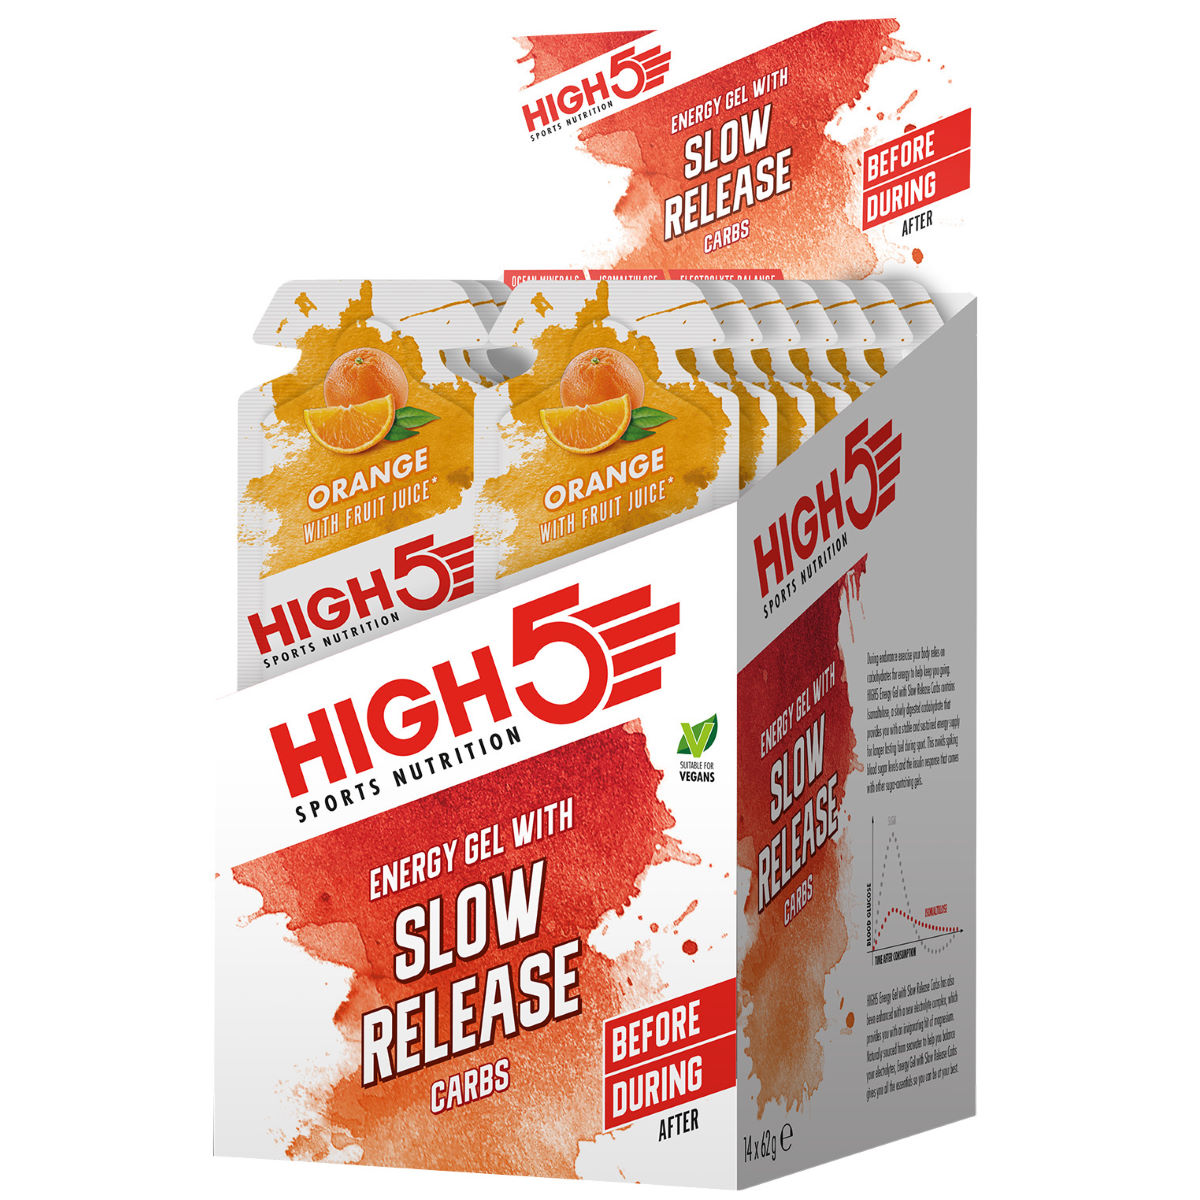 High5 Energy Gel With Slow Release Carbs (14 X 62g) - 14x62g Orange